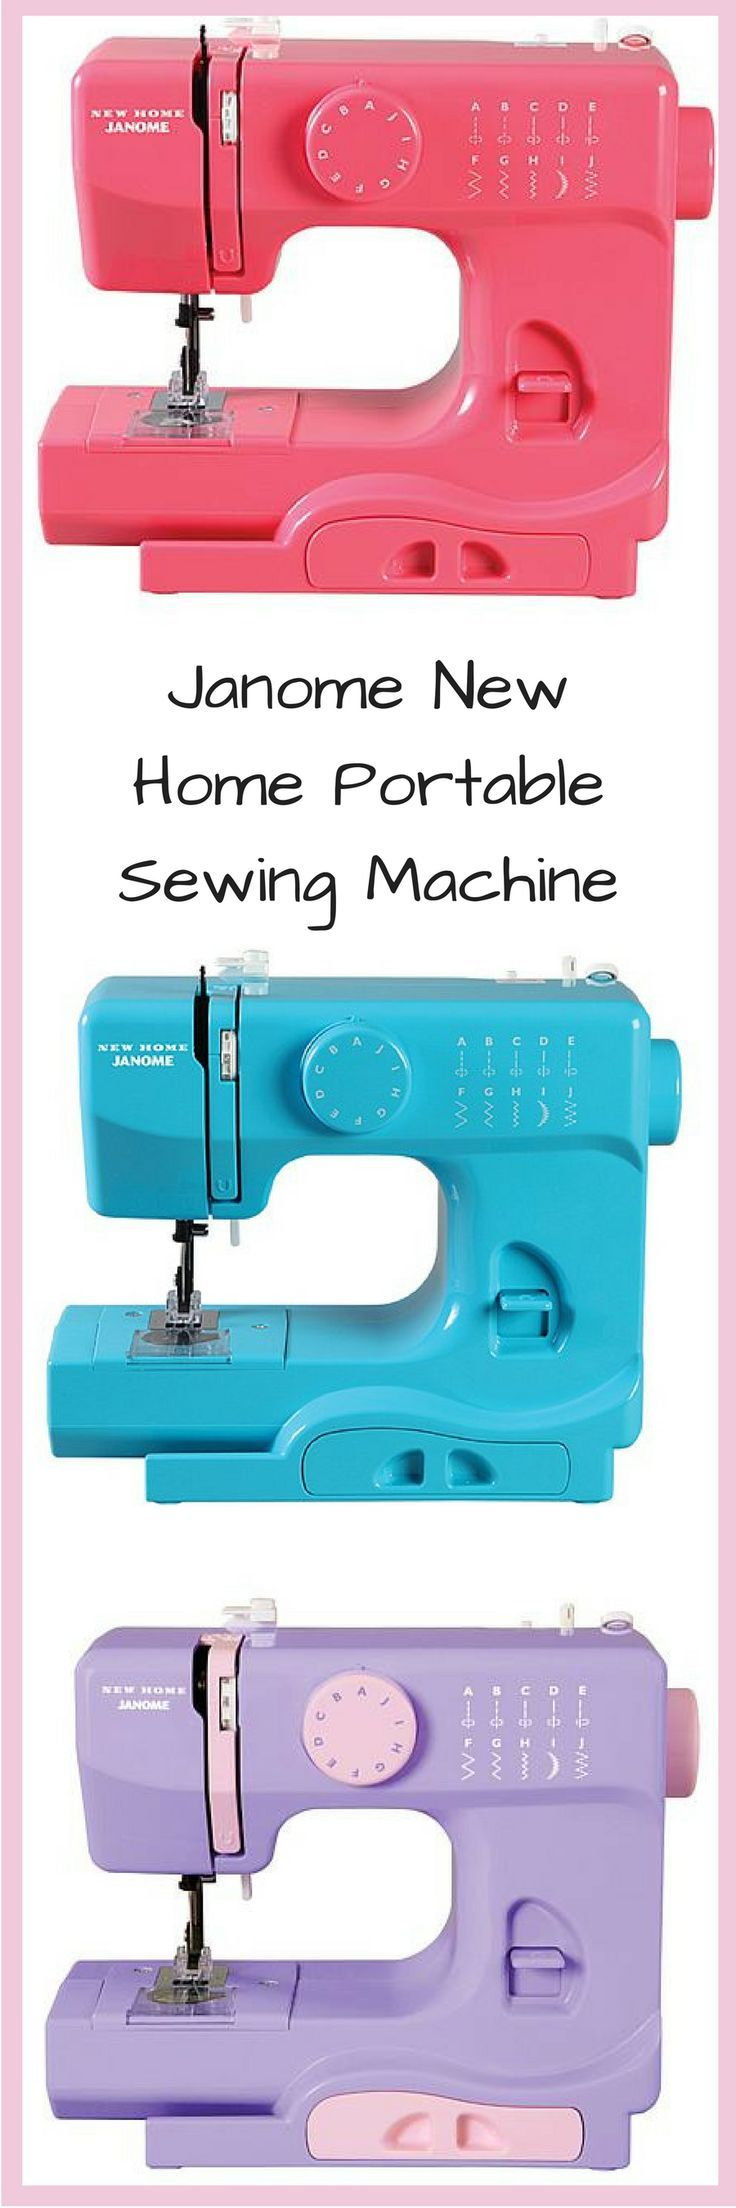 I need this sewing machine in every color.  So handy to have a portable sewing machine Janome New Home Portable Sewing Machine afflink